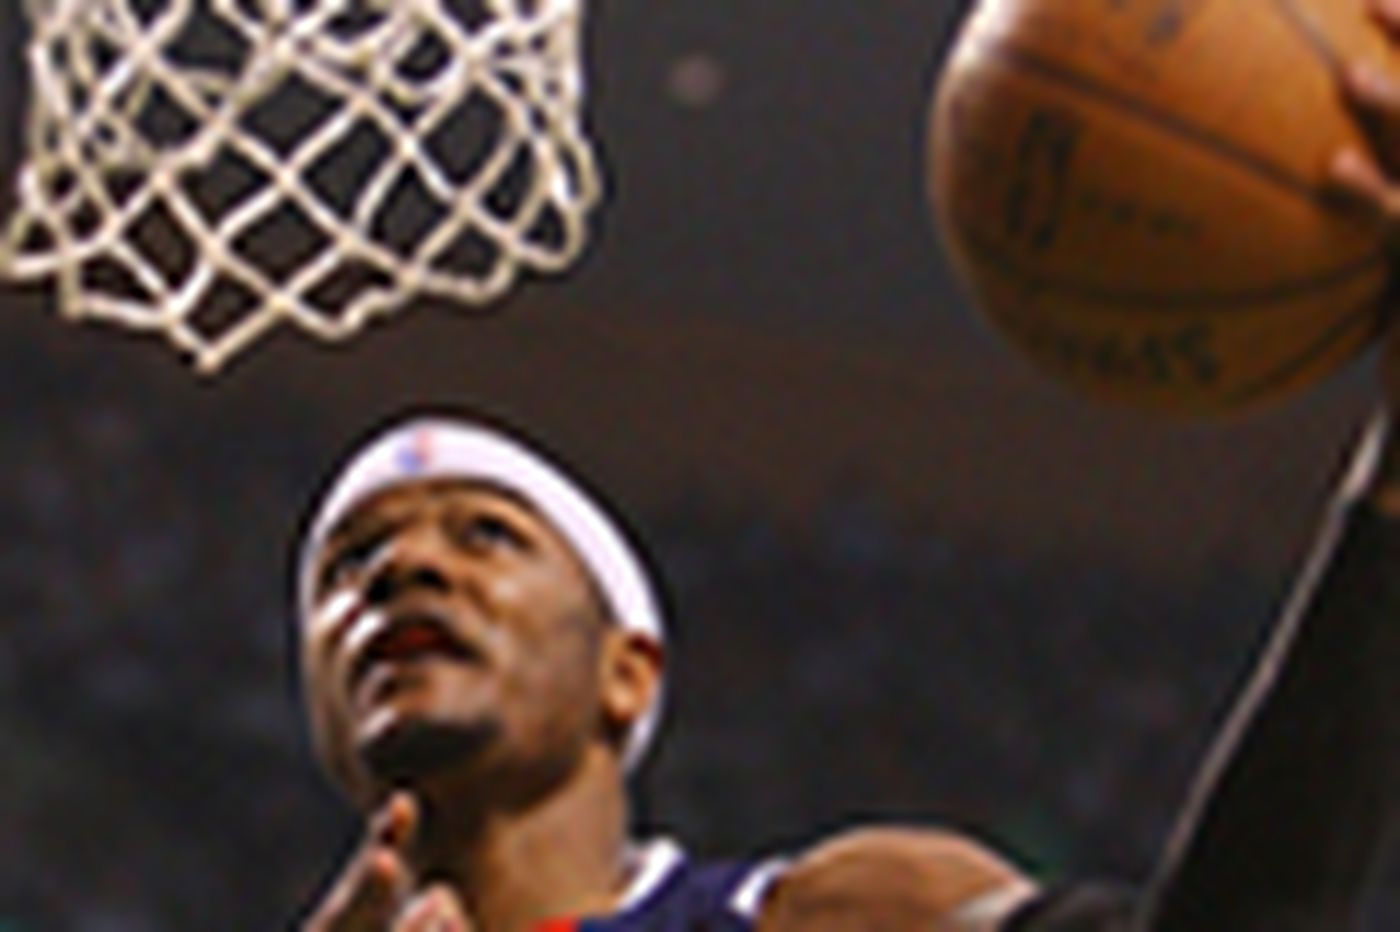 Smith leaves impressed but without 76ers offer